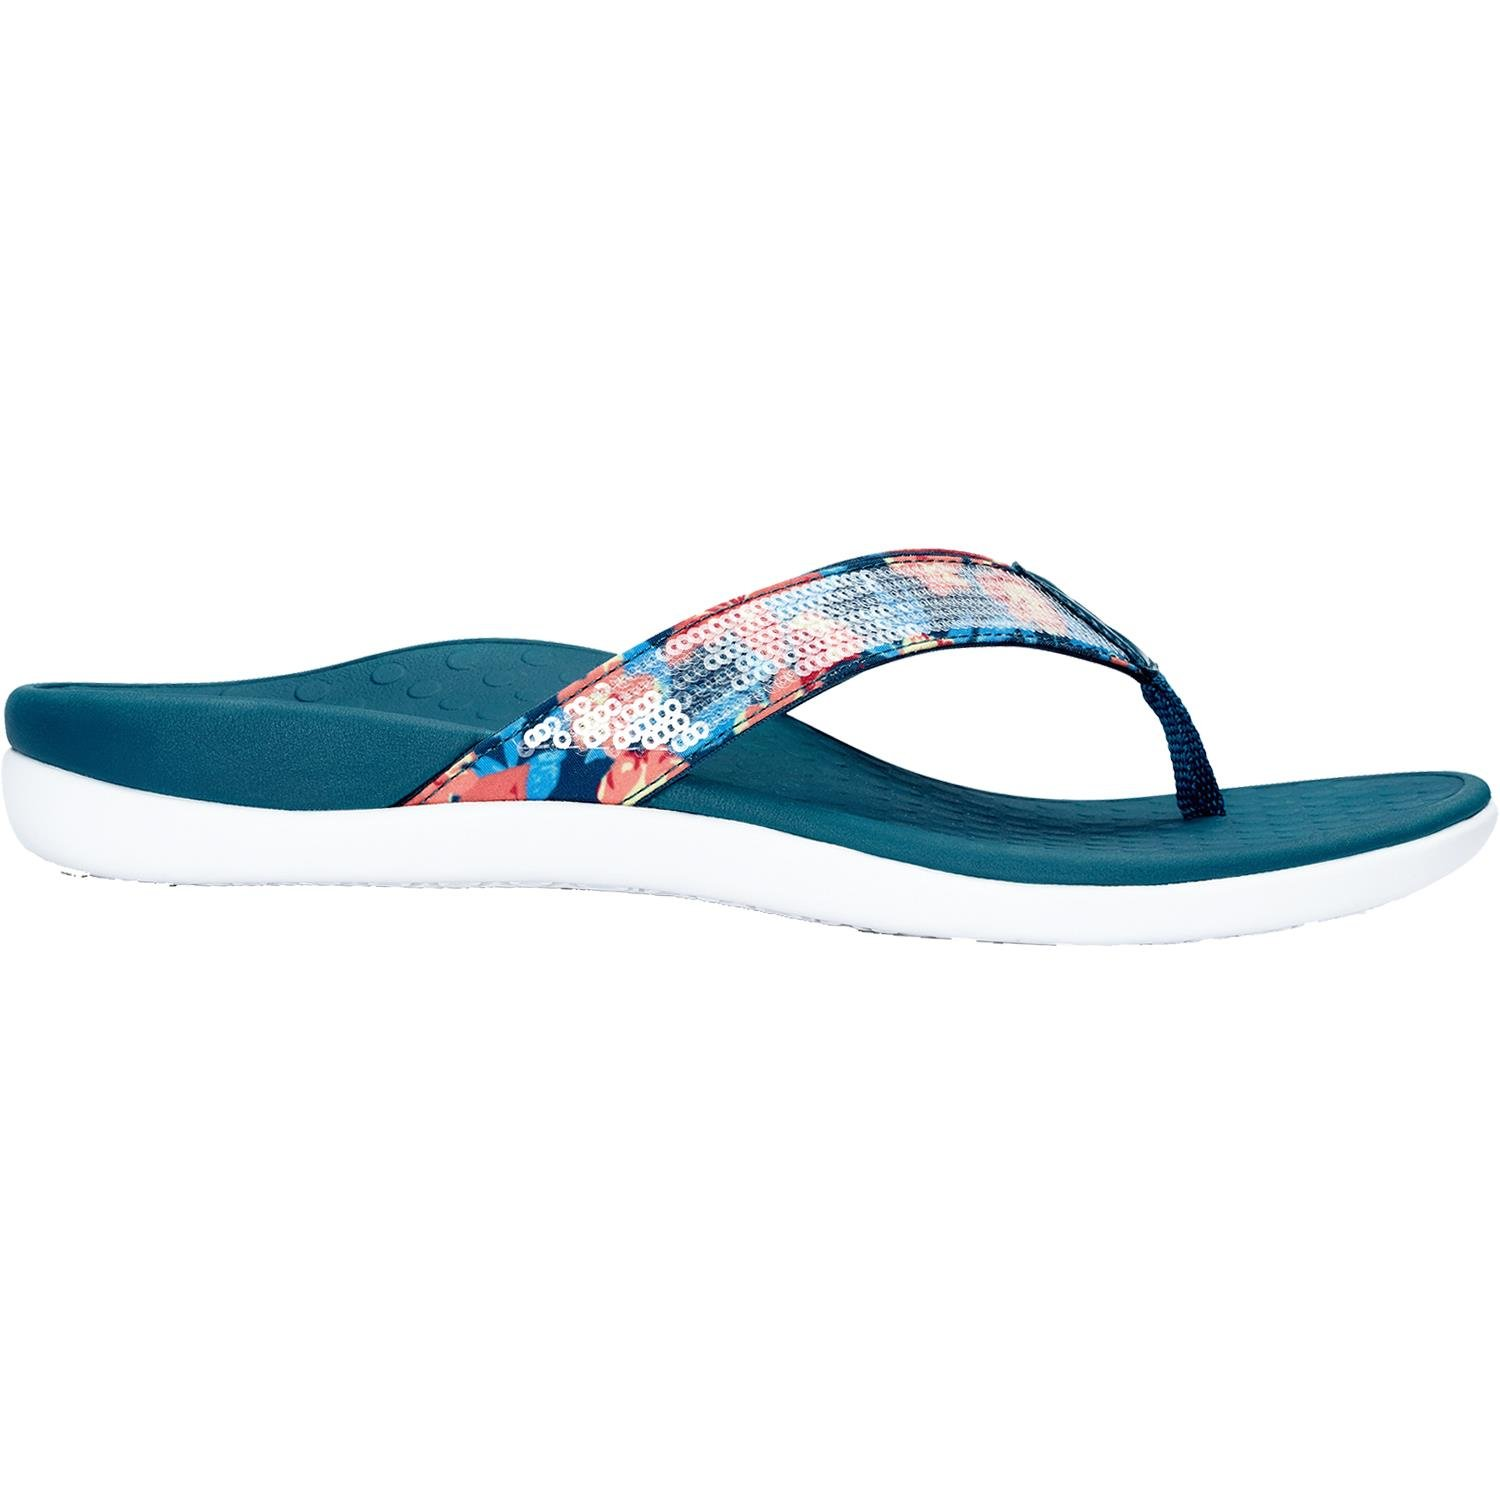 3675e042336ca Galleon - Vionic Womens Tide Sequins Toepost Sandal Teal Floral Size 8